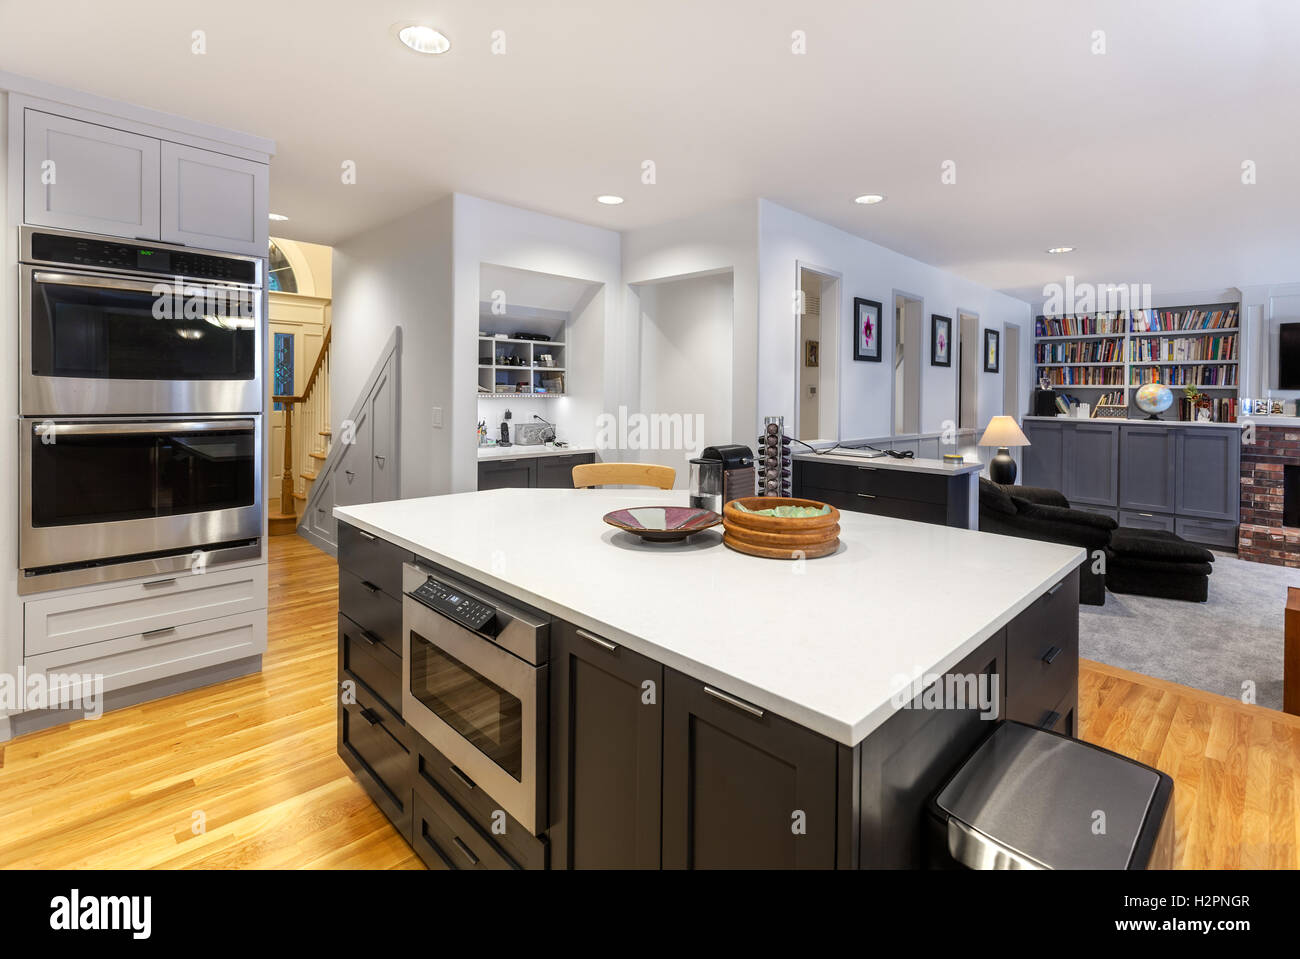 Open kitchen and family room - Stock Image